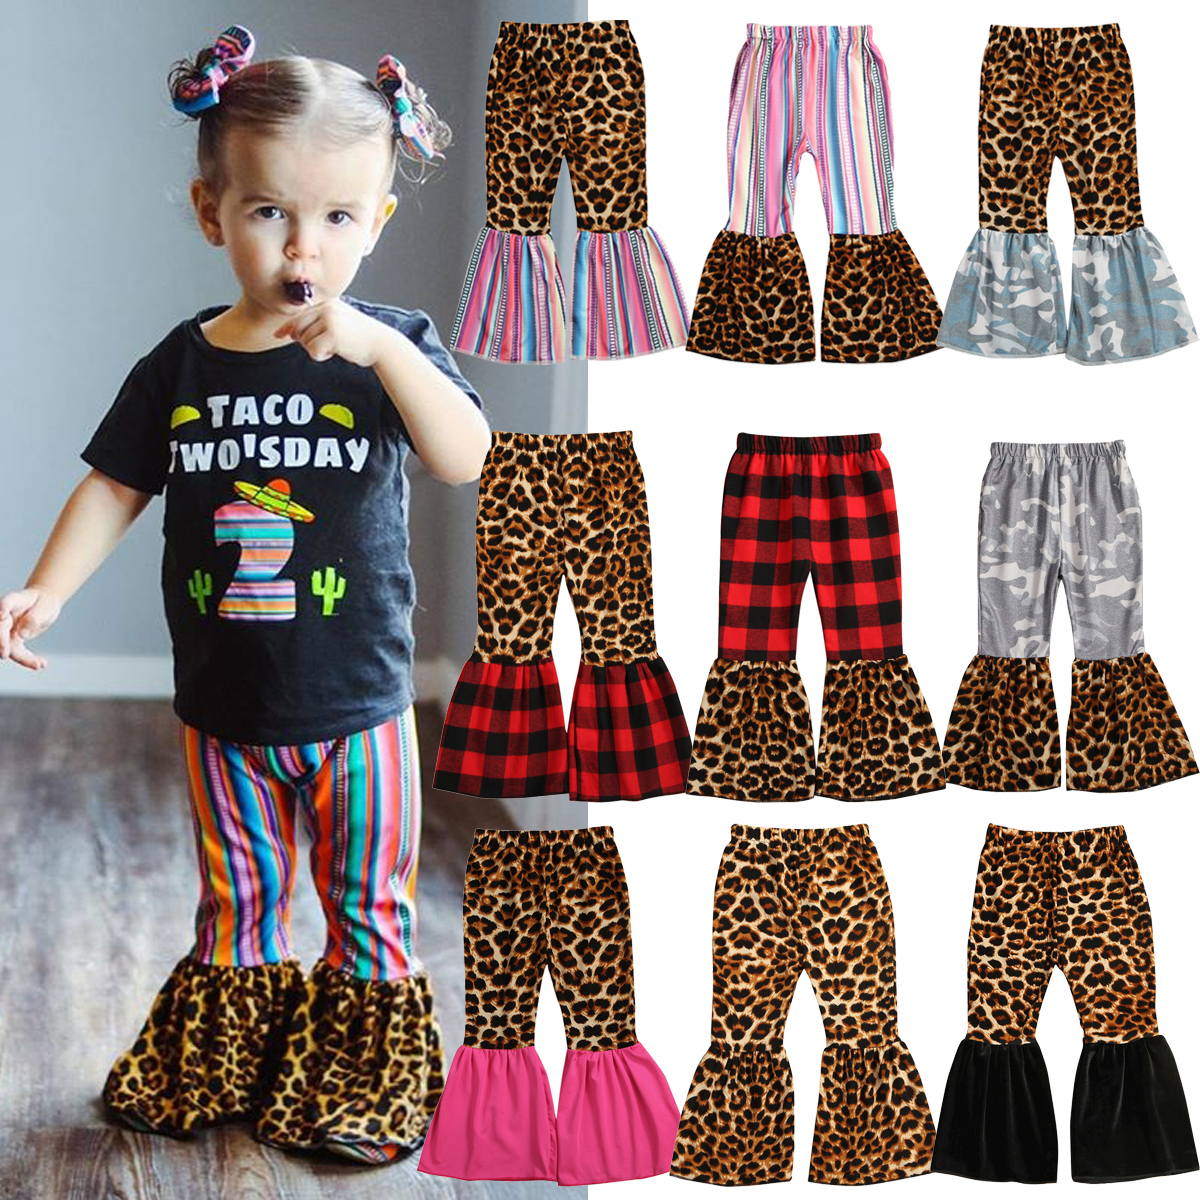 WALLARENEAR Toddler Girls Denim Jeans Ruffle Flare Pants Bell Bottom Trousers Ripped Leggings Baby Girl Fall Winter Clothes